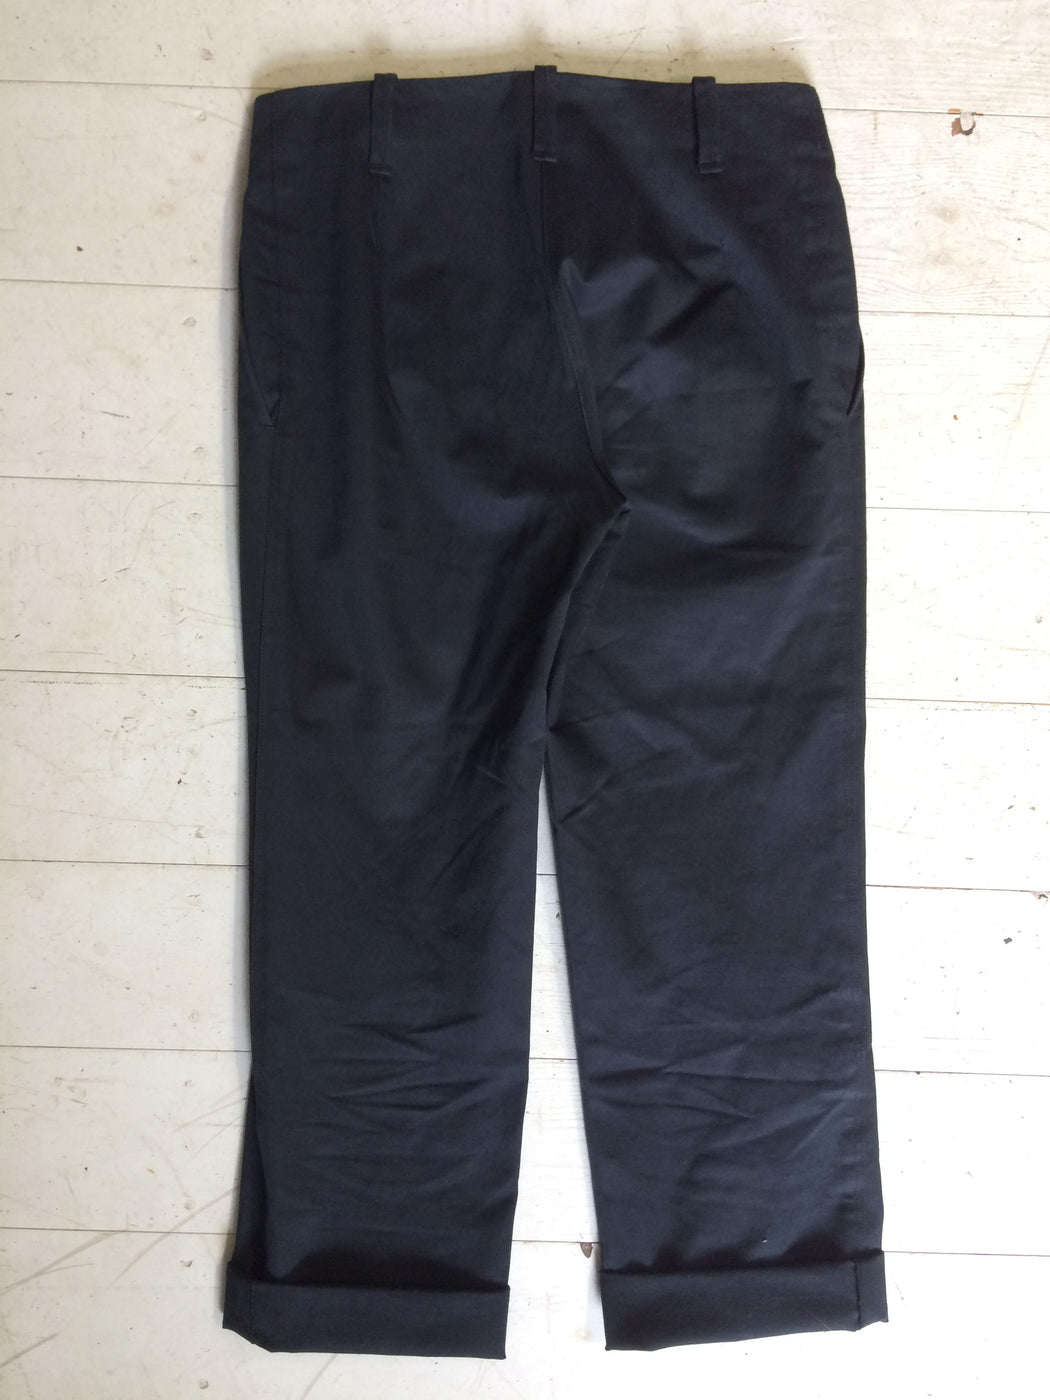 Midnight Blue Cotton Jil Sander Trousers  Size 26/27